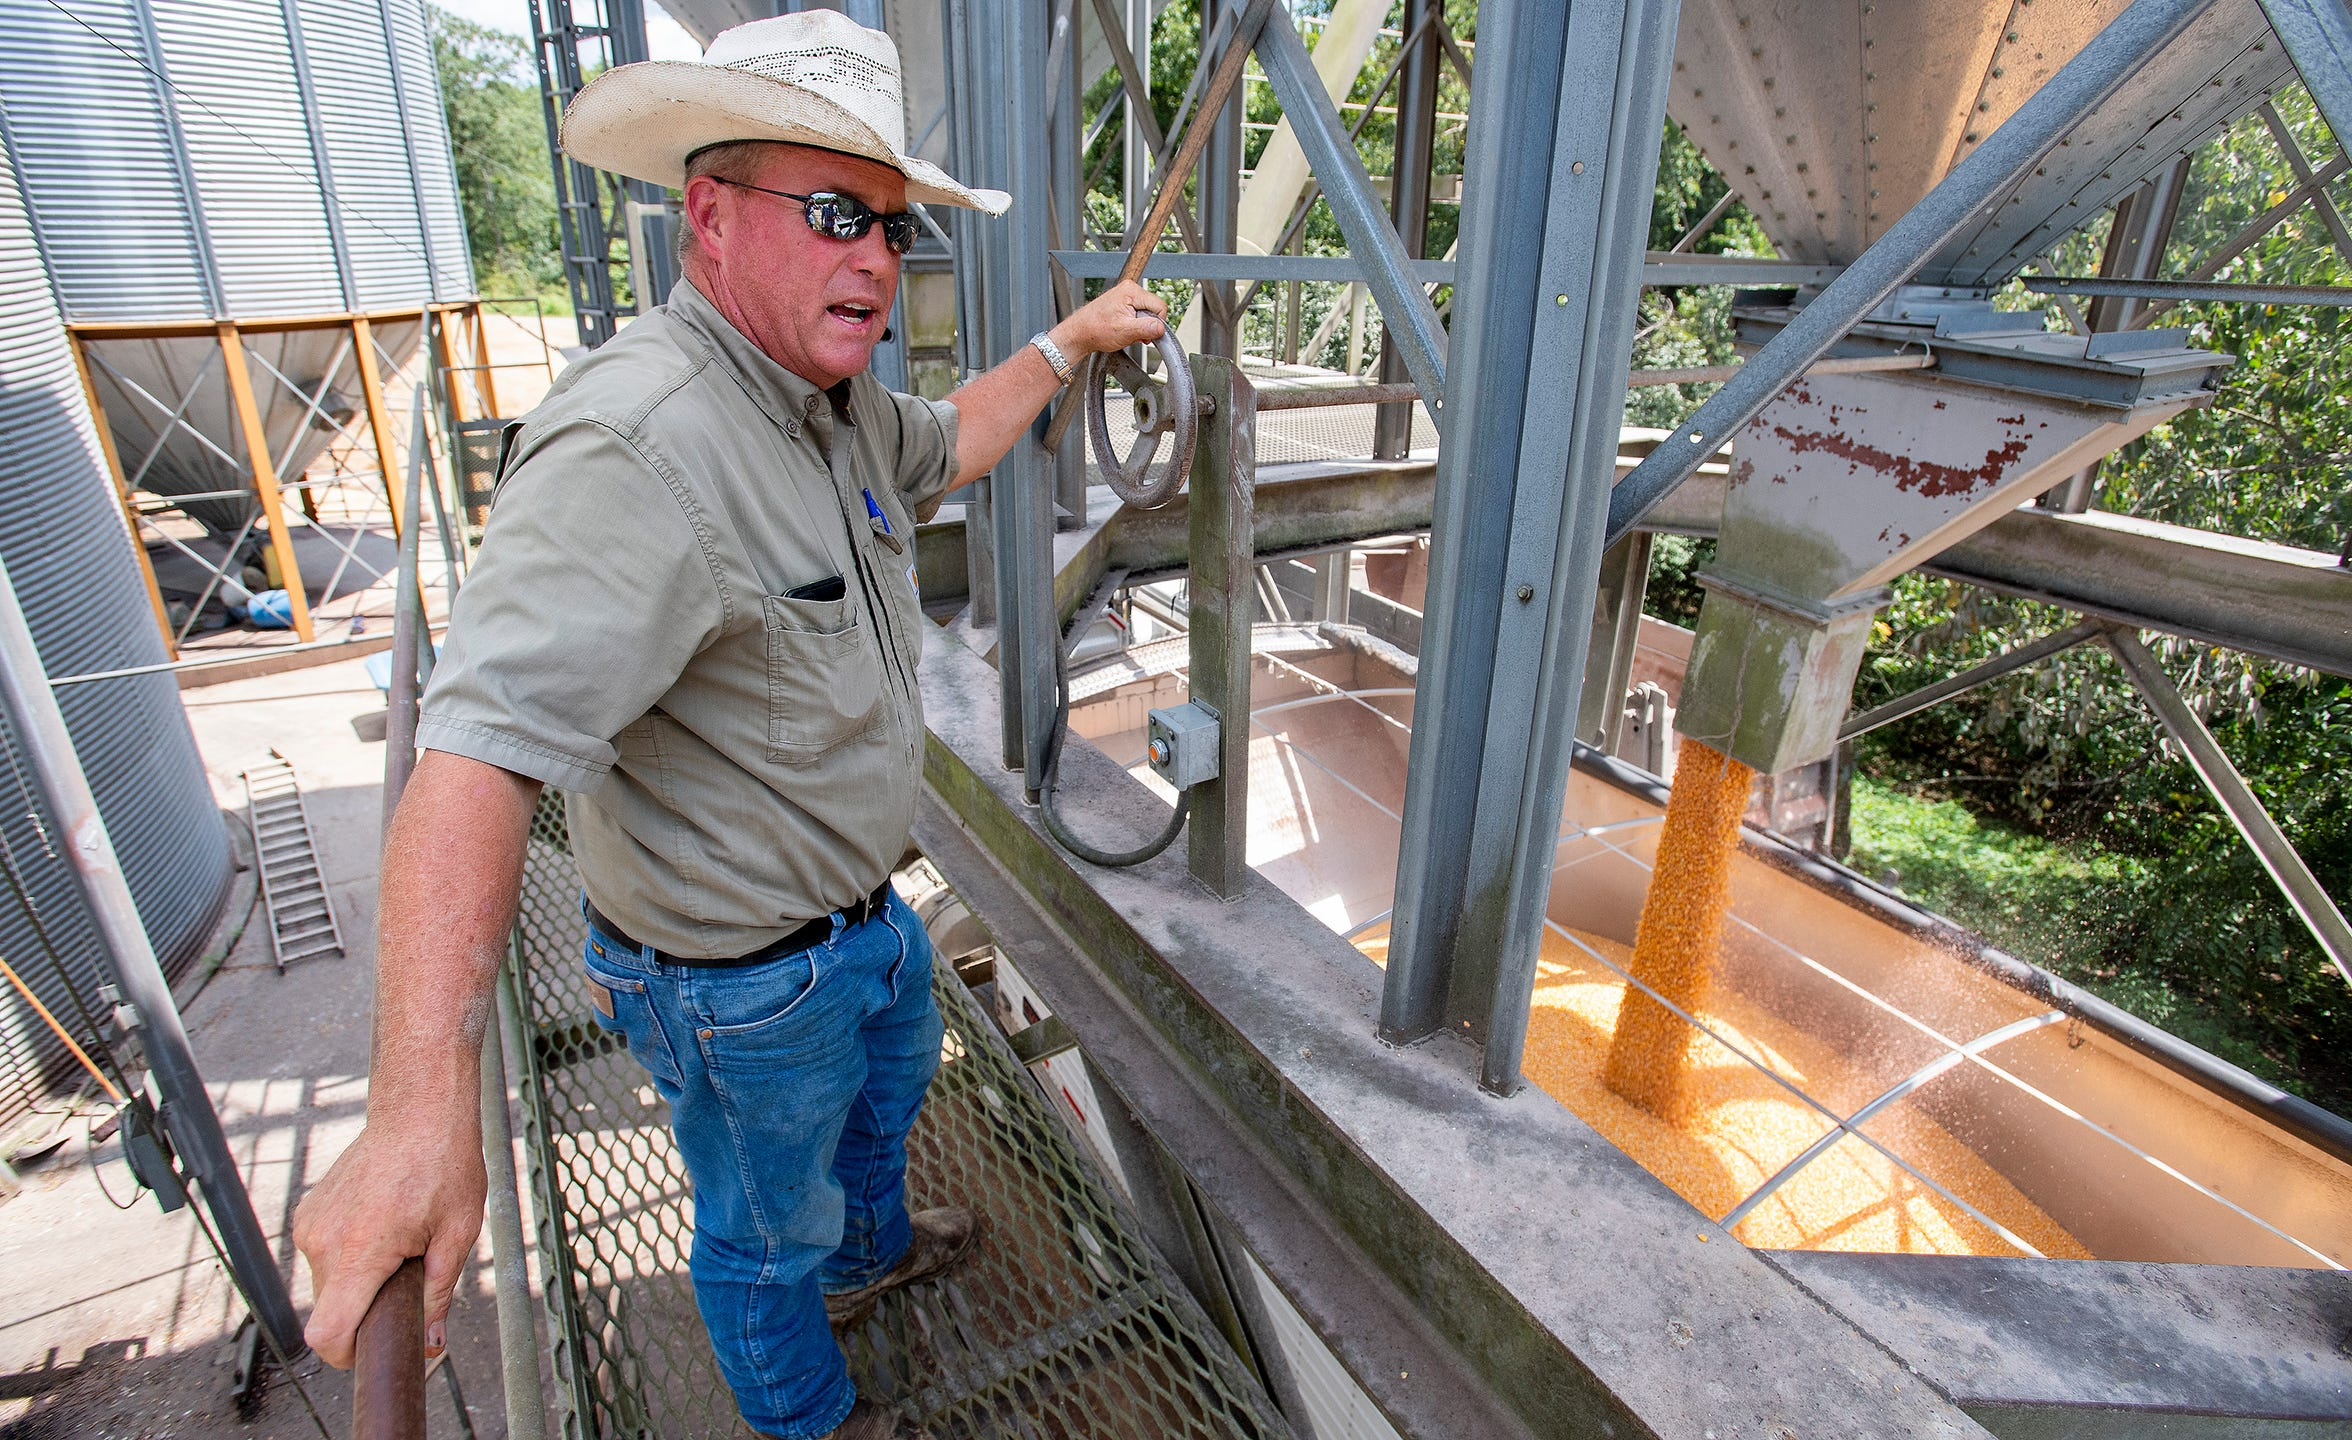 Mike Dee loads corn into a hopper bottom trailer as he works on his Dee River Ranch near Aliceville, Ala., on Wednesday August 28, 2019.